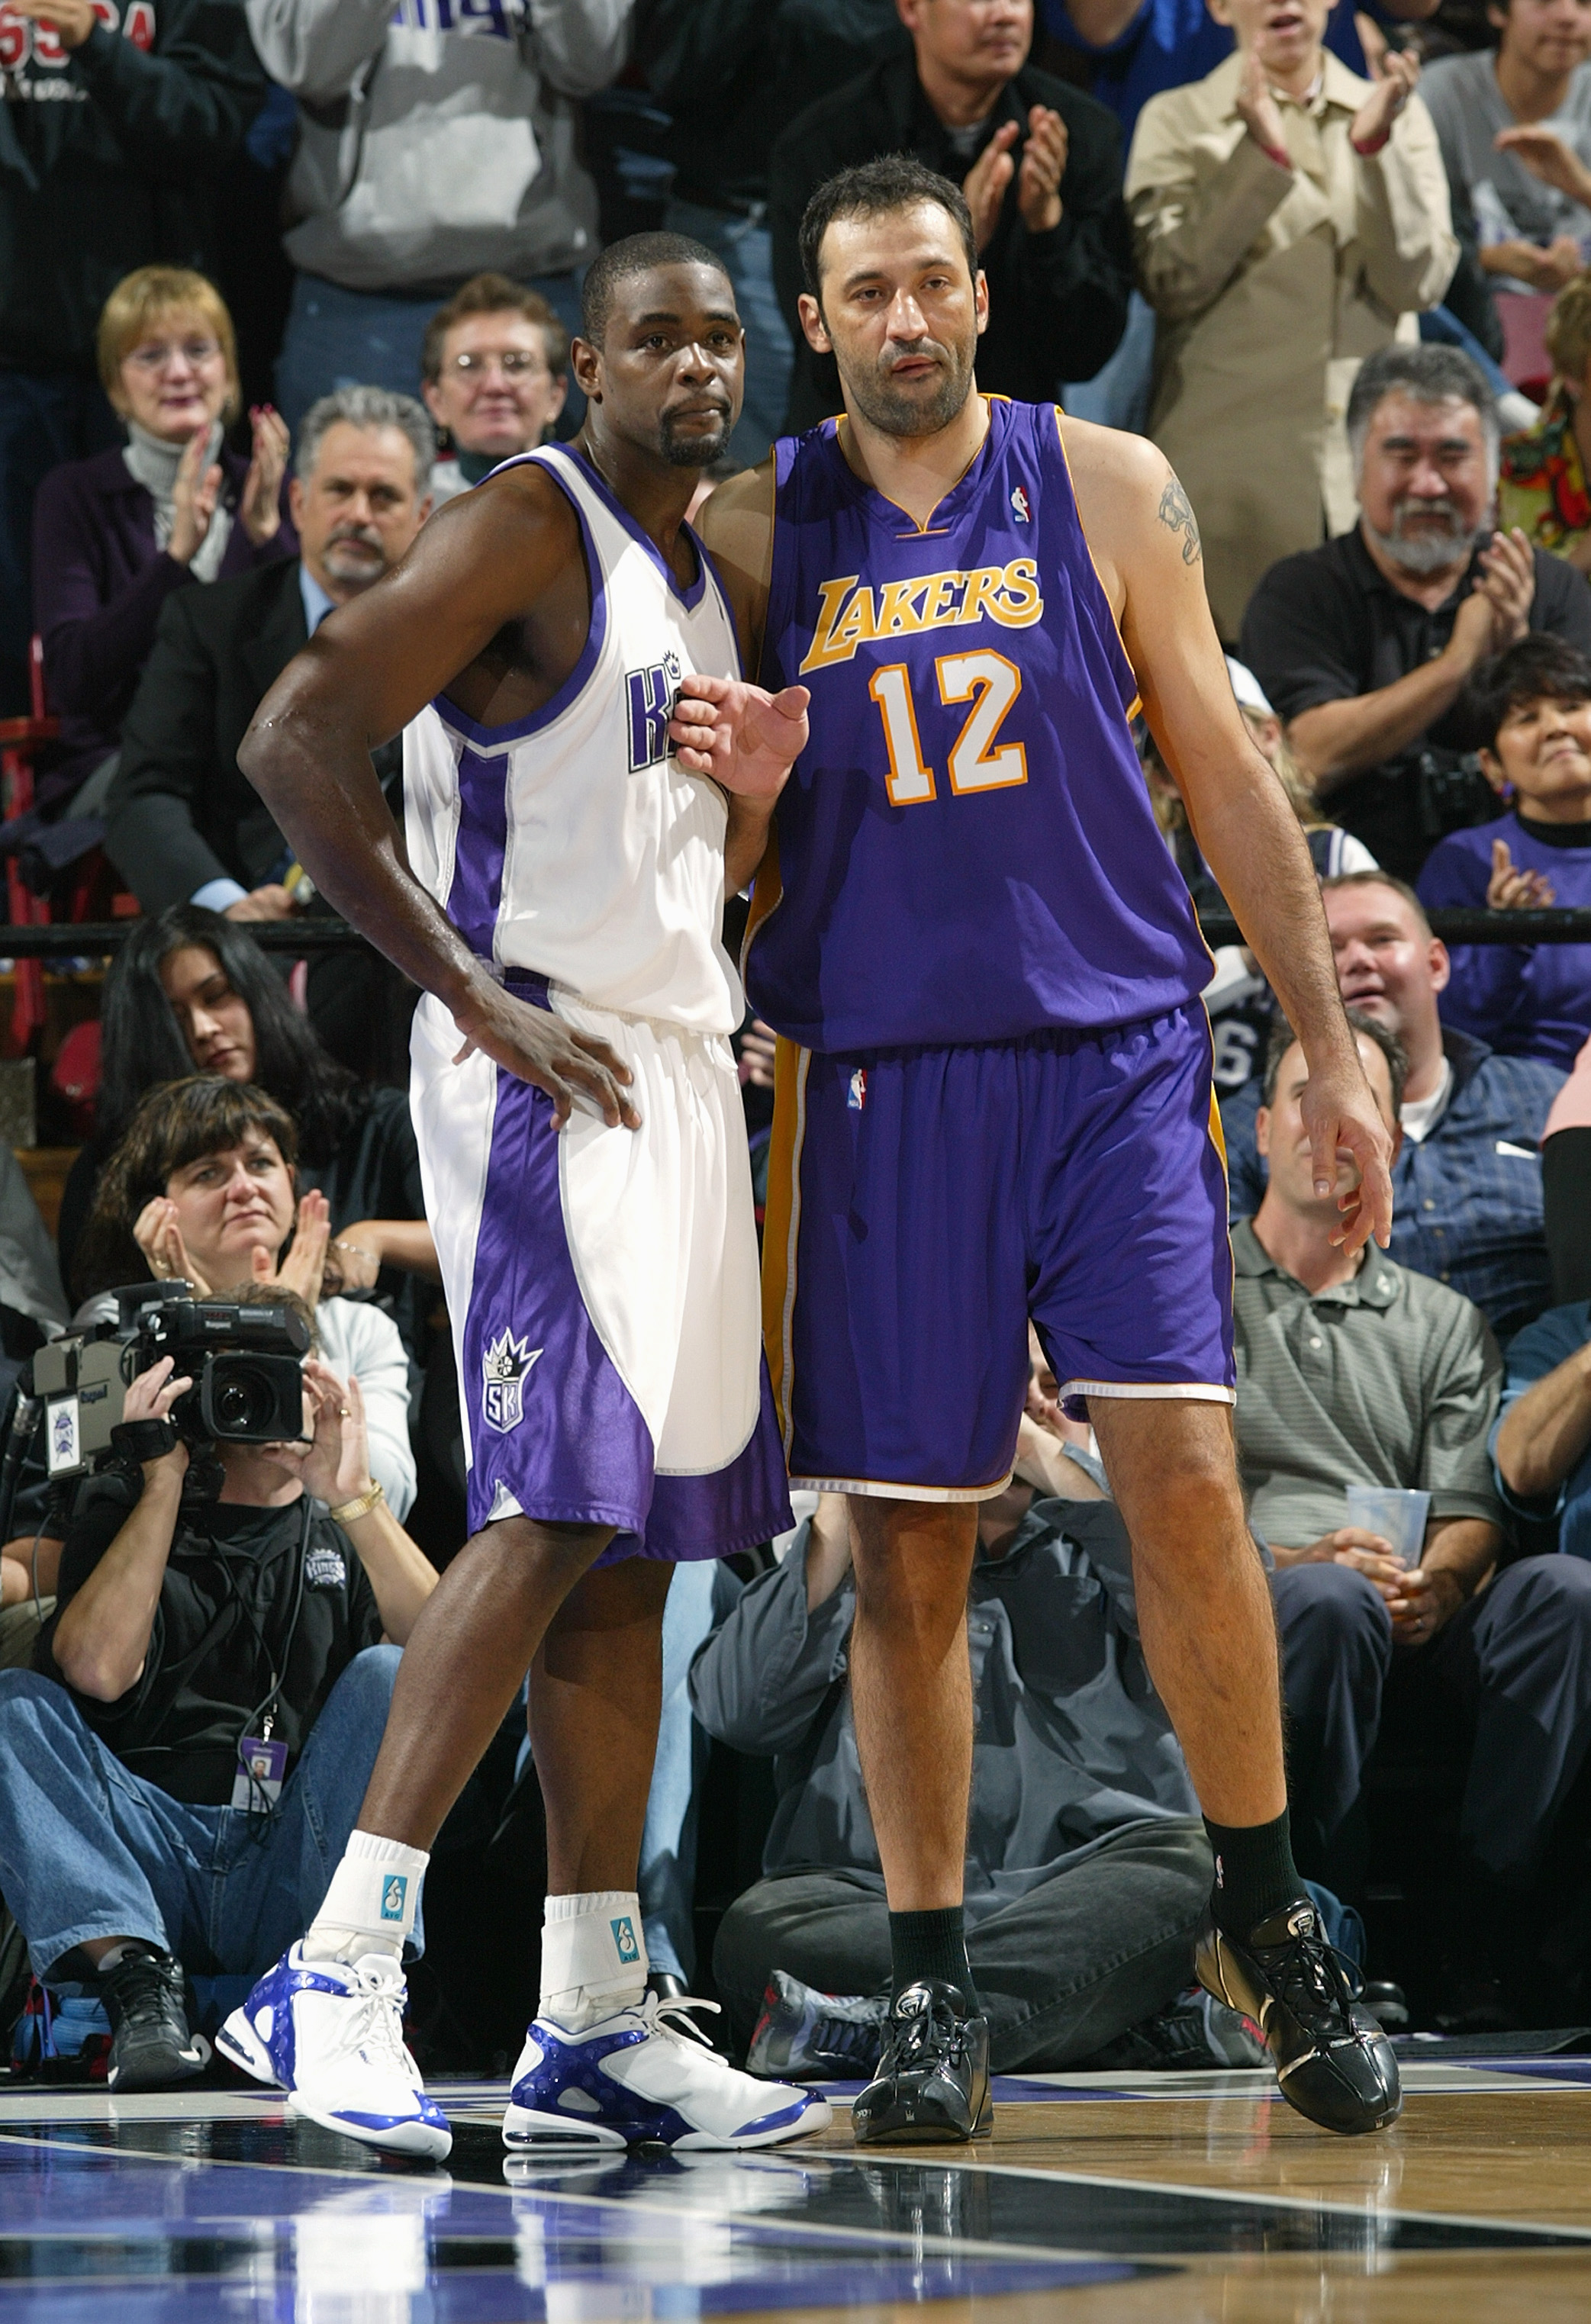 SACRAMENTO, CA - DECEMBER 16:  Chris Webber #4 of the Sacramento Kings and Vlade Divac #12 of the Los Angeles Lakers vie for position during their game on December 16, 2004 at Arco Arena  in Sacramento, California. The Lakers won 115-99. NOTE TO USER: Use